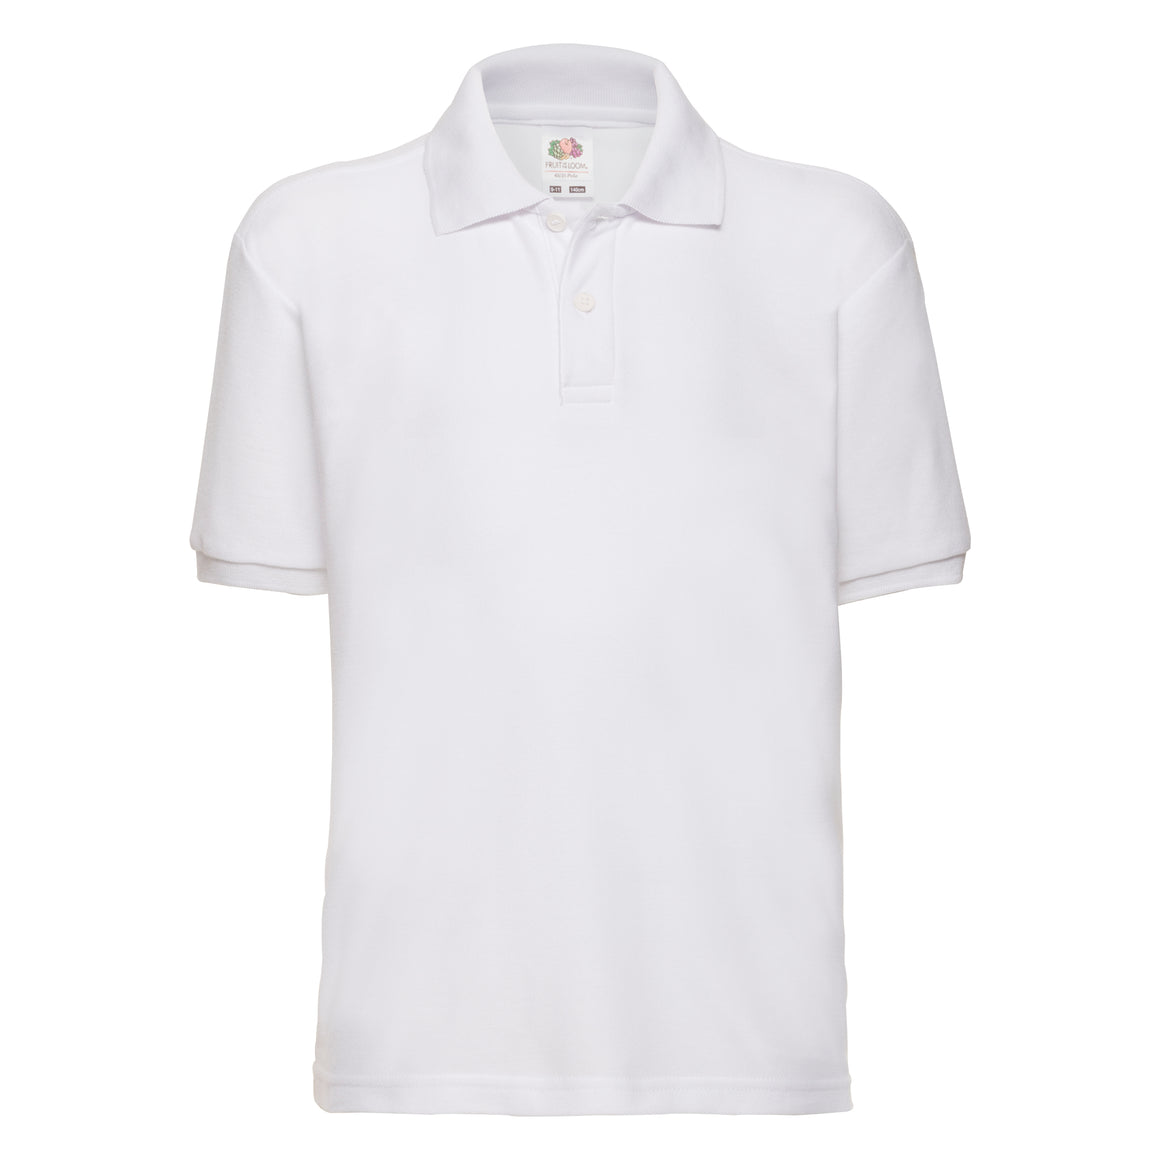 Queensway Primary School Polo T-Shirt